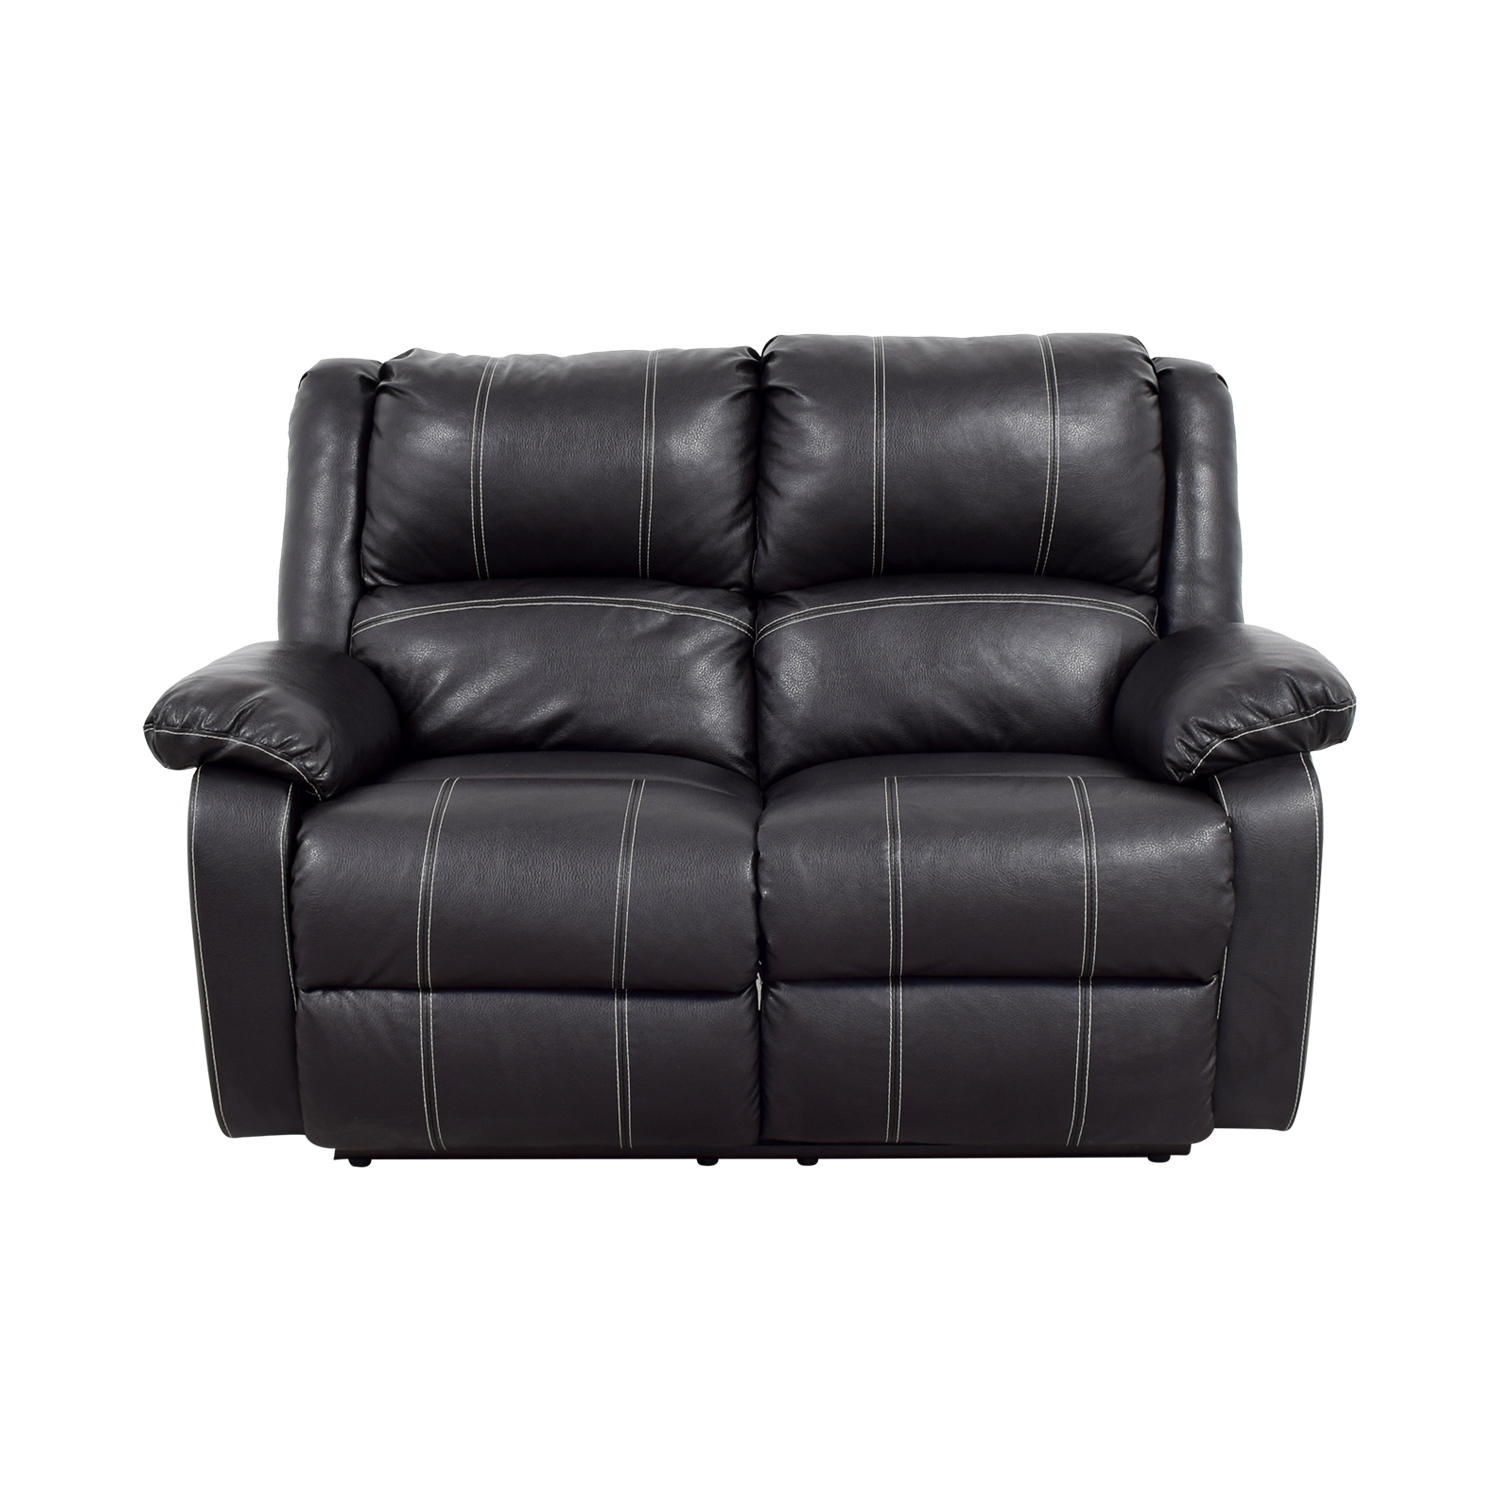 Acme Acme Black Leather Reclining Loveseat coupon ...  sc 1 st  Furnishare & 41% OFF - Acme Acme Black Leather Reclining Loveseat / Sofas islam-shia.org